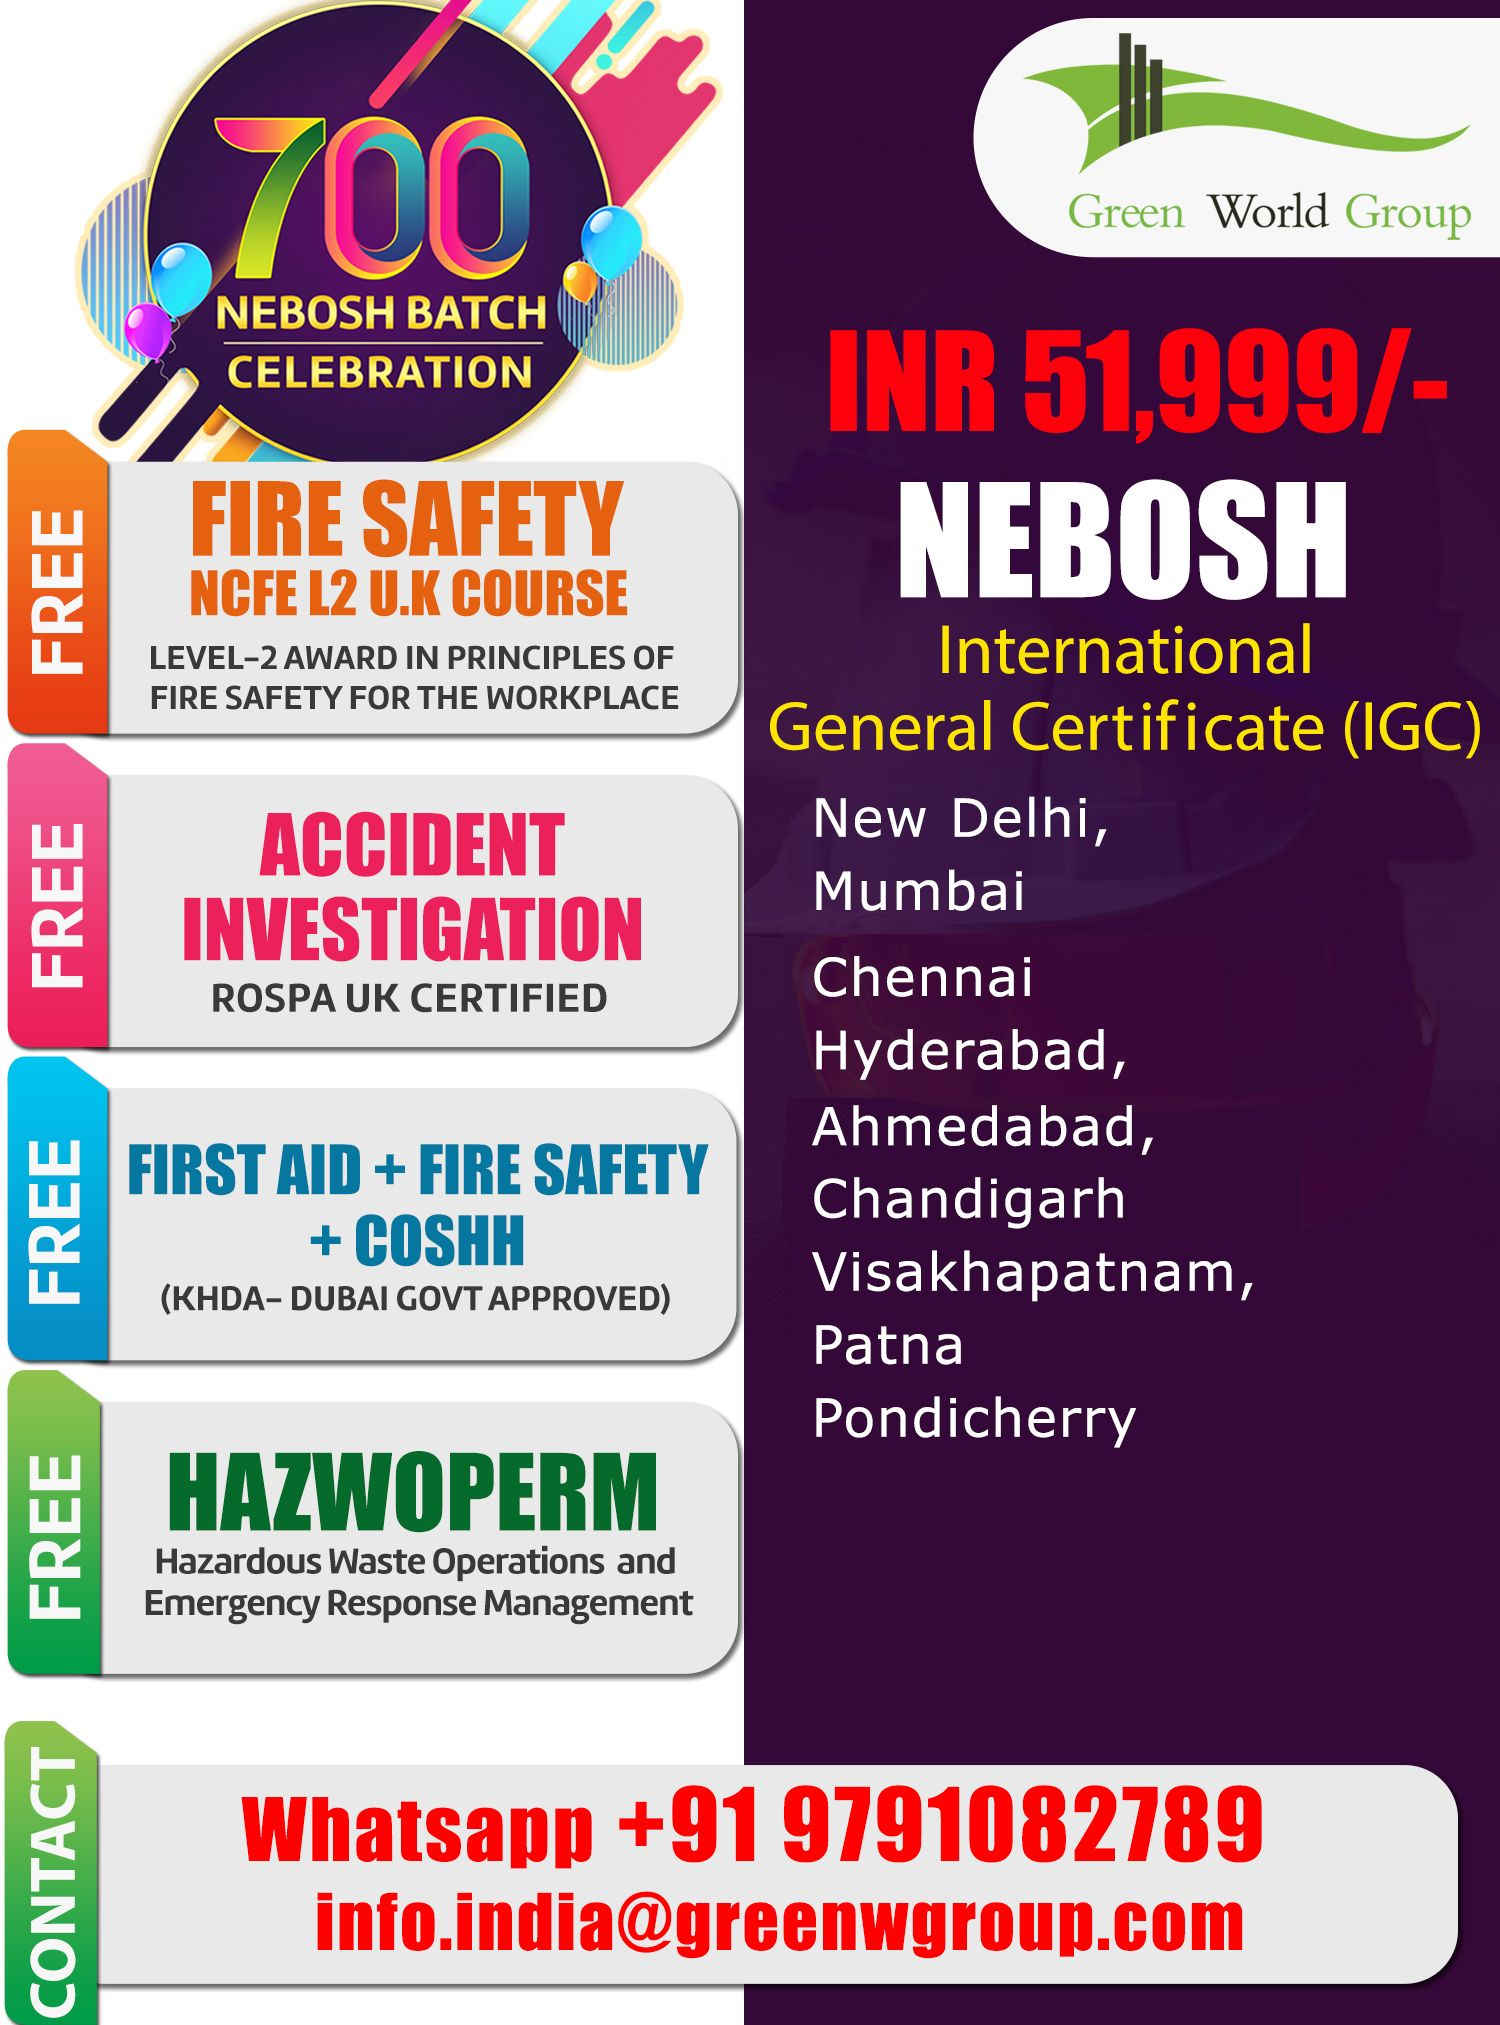 GWG Serves NEBOSH IGC Training Course In Chennai And Also Provide